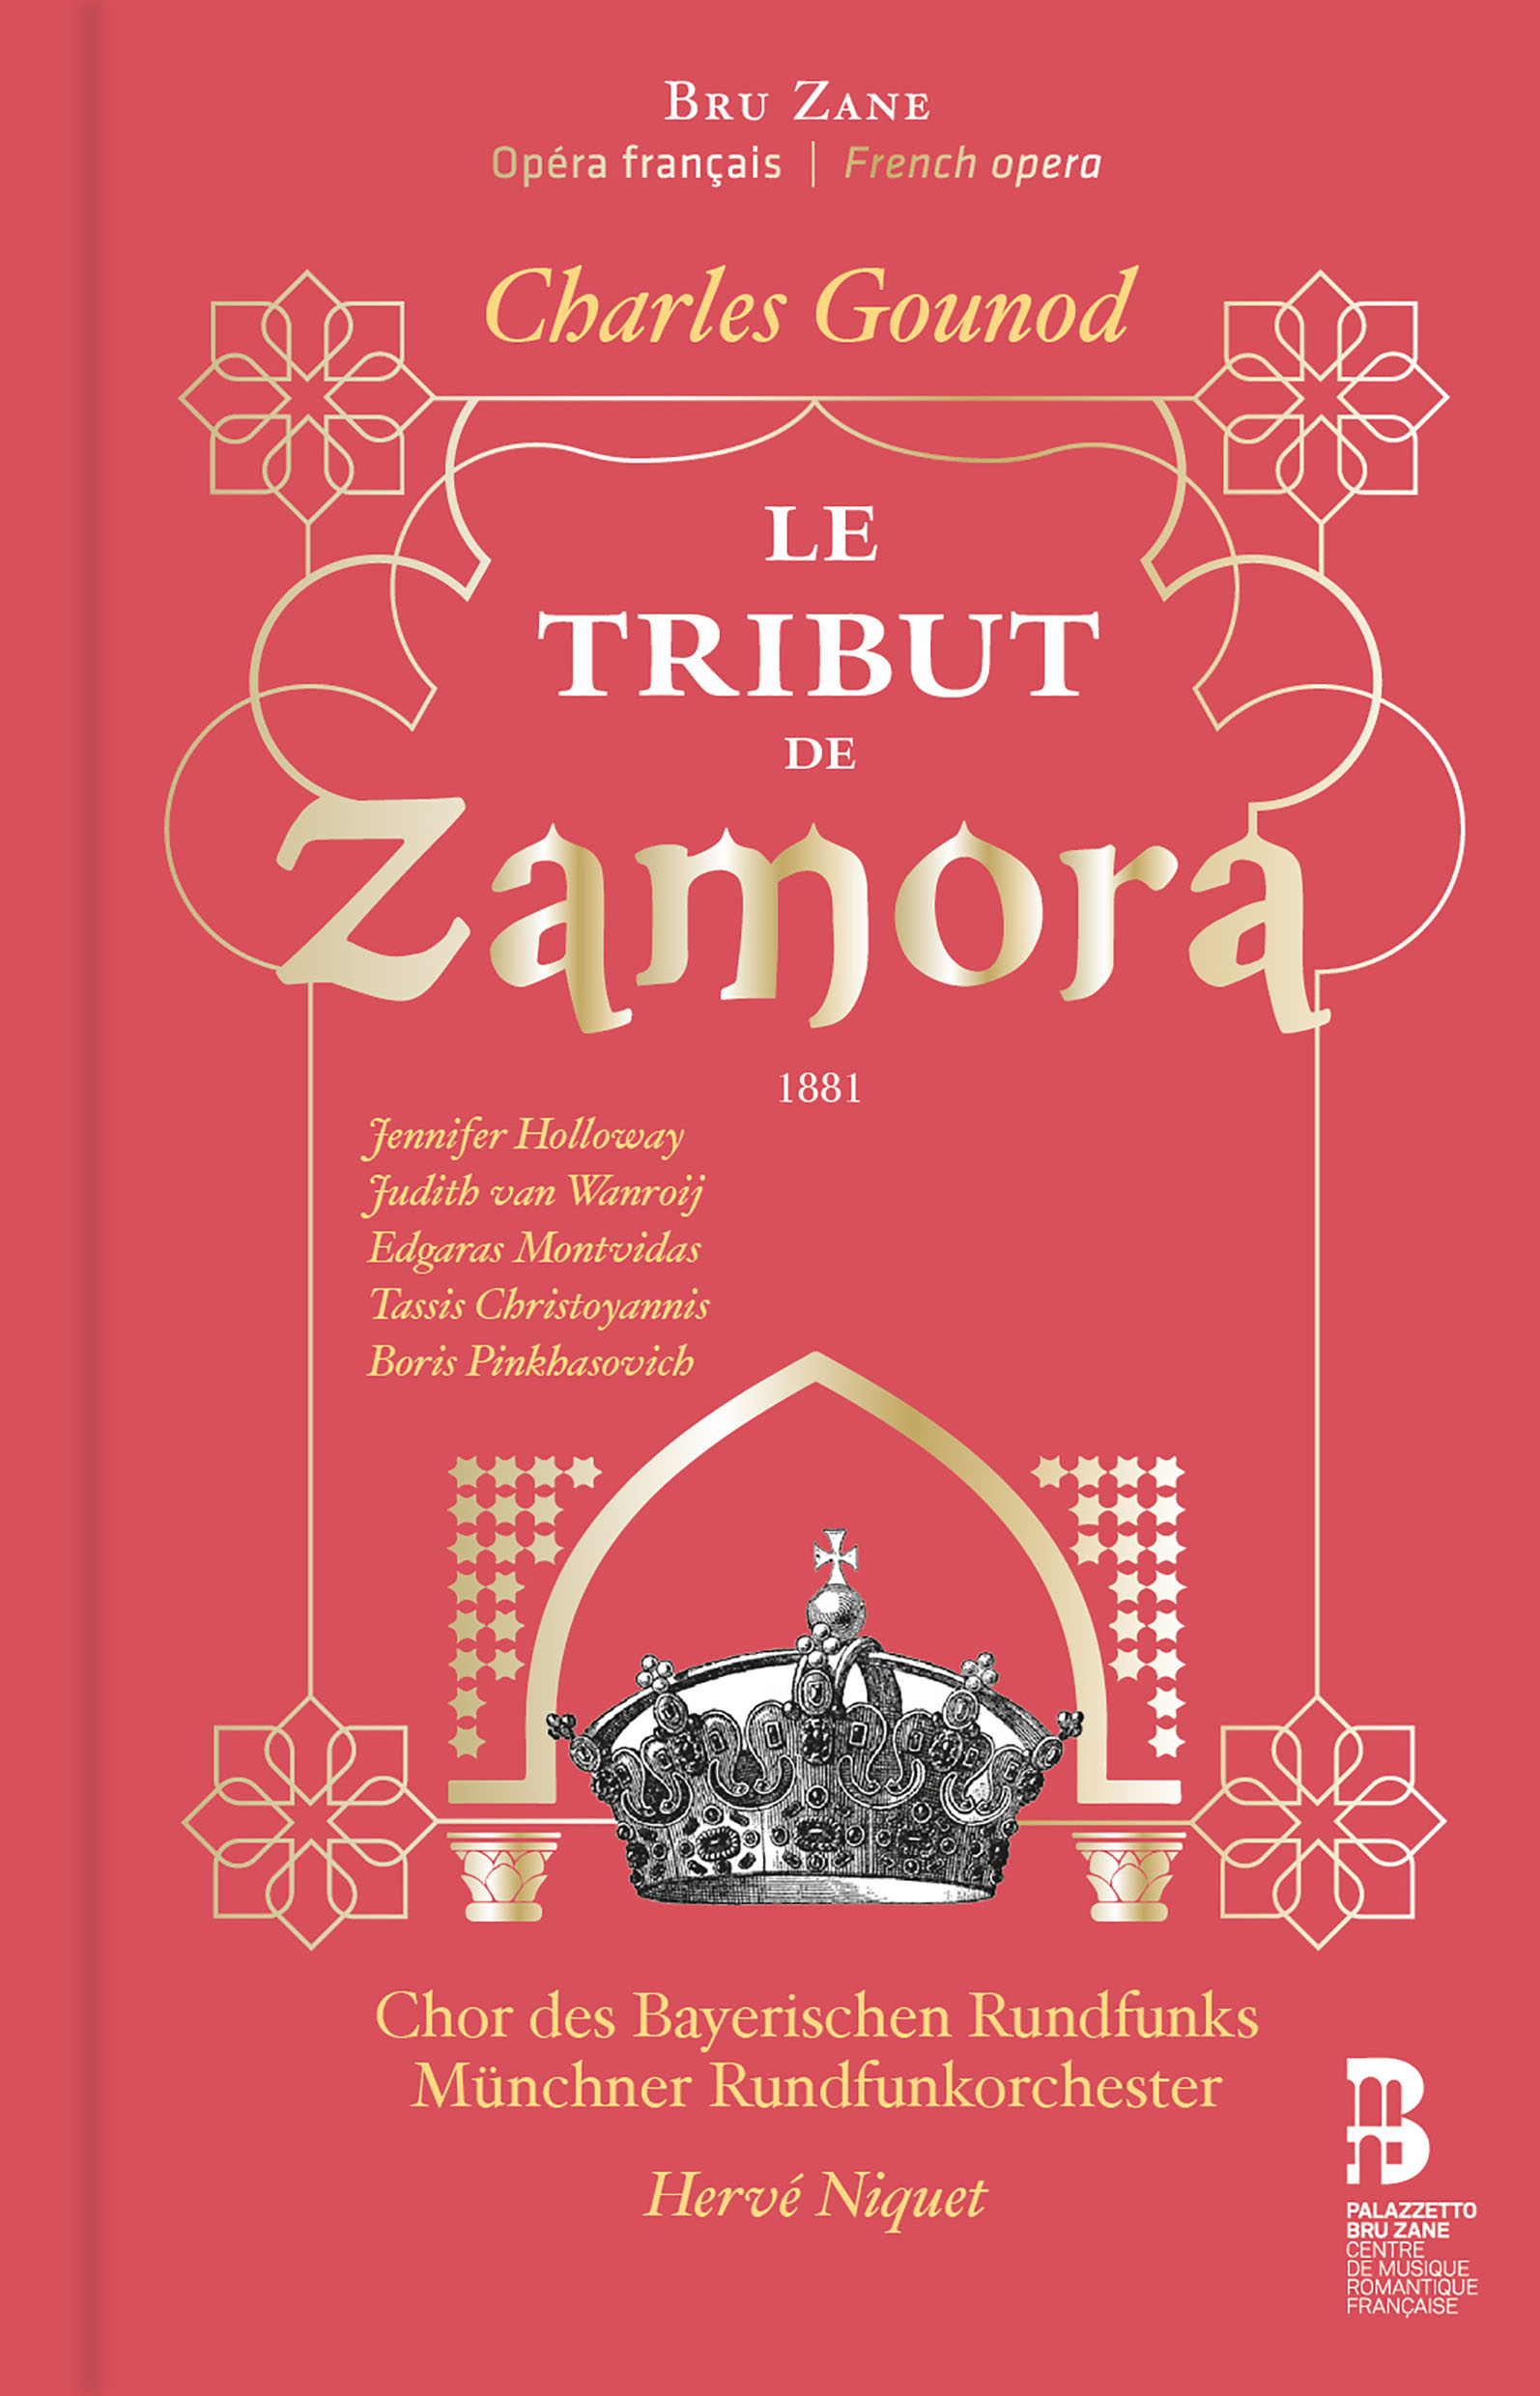 Le Tribut de Zamora, Charles Gounod